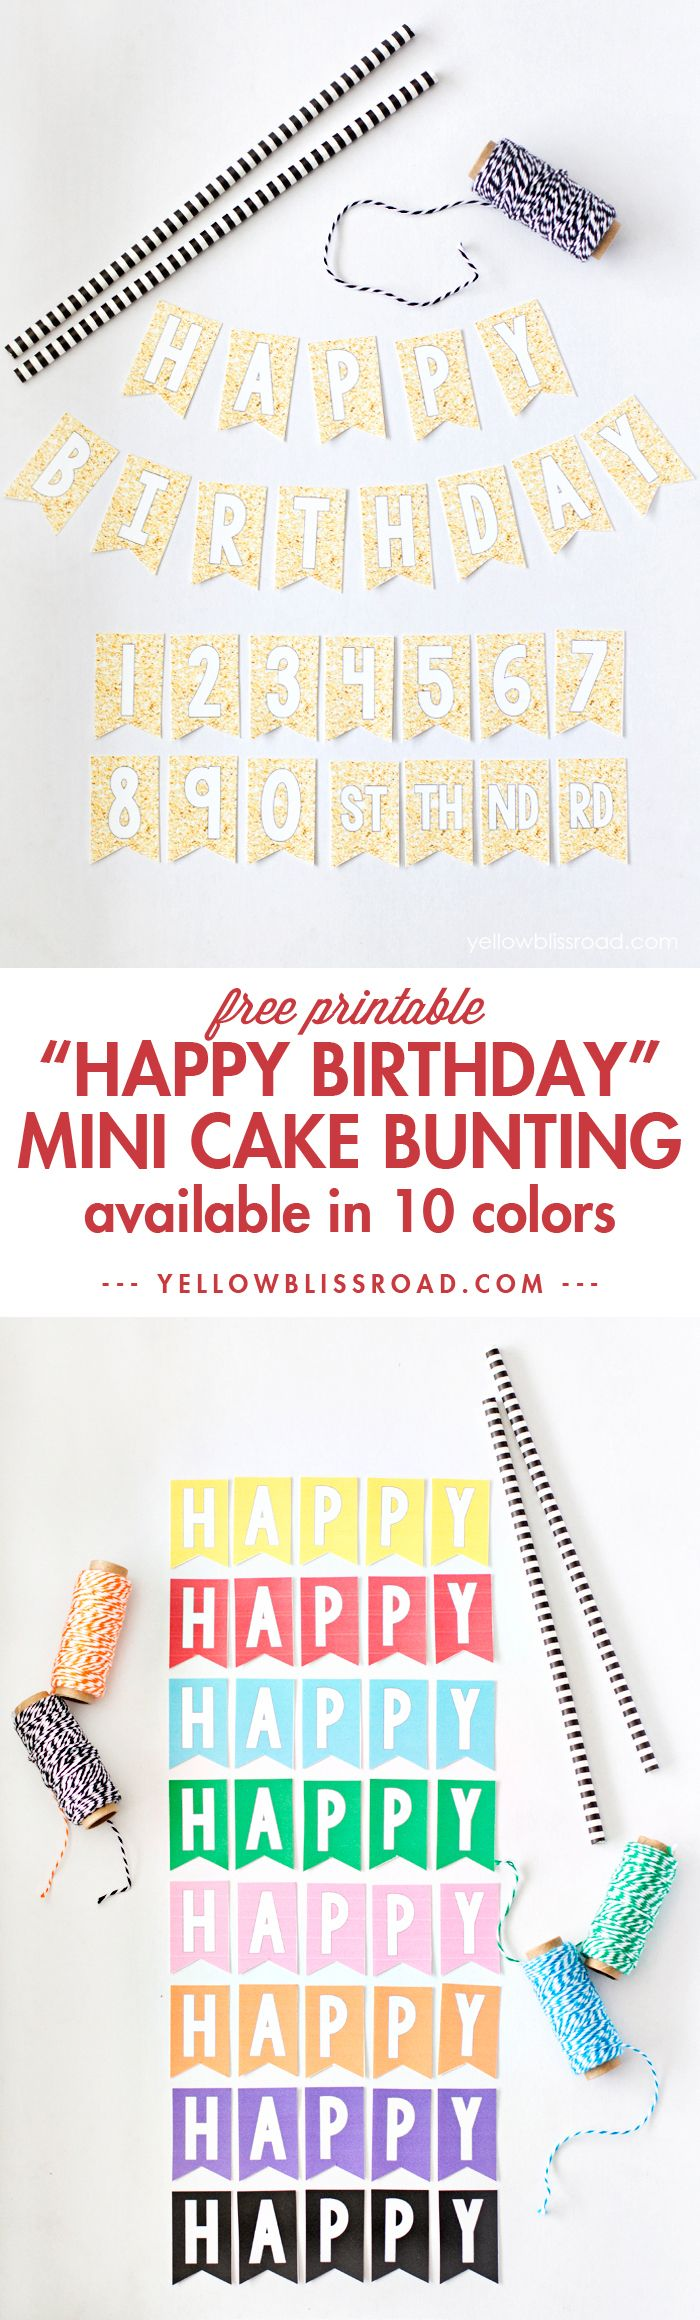 Free Printable Mini Birthday Cake Bunting in a variety of colors